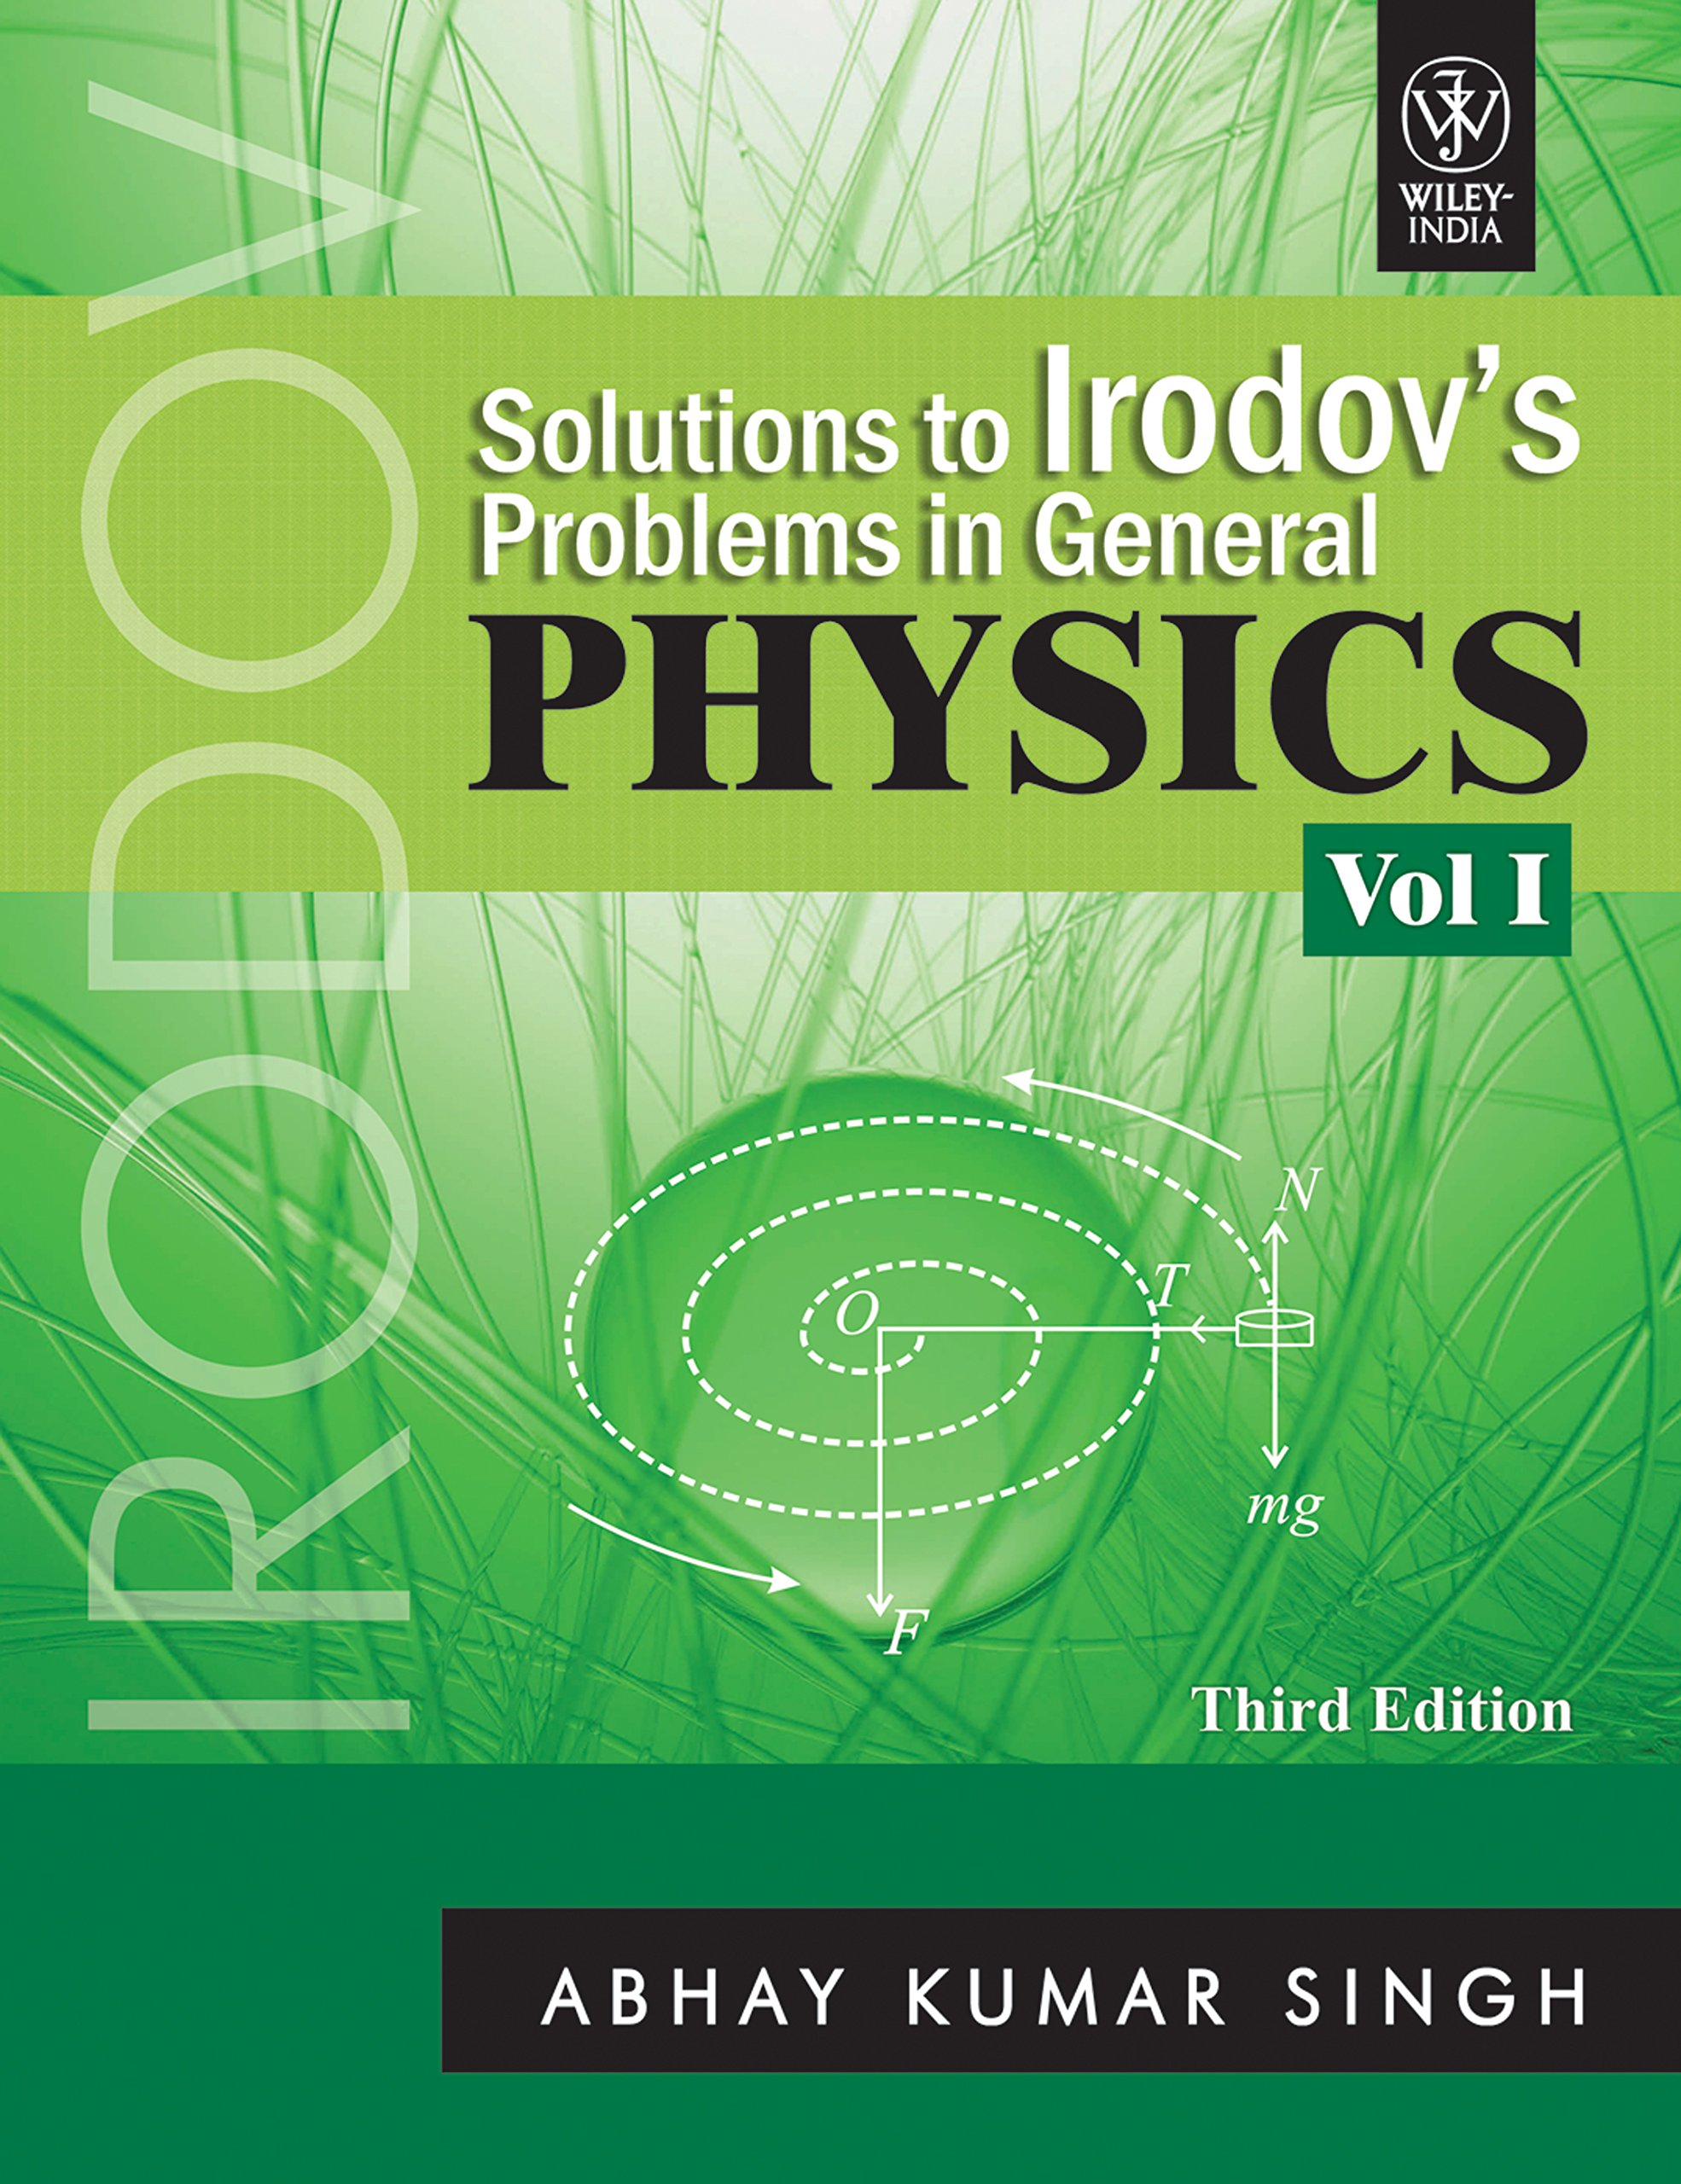 Solutions to I.E. Irodovs Problems in General Physics